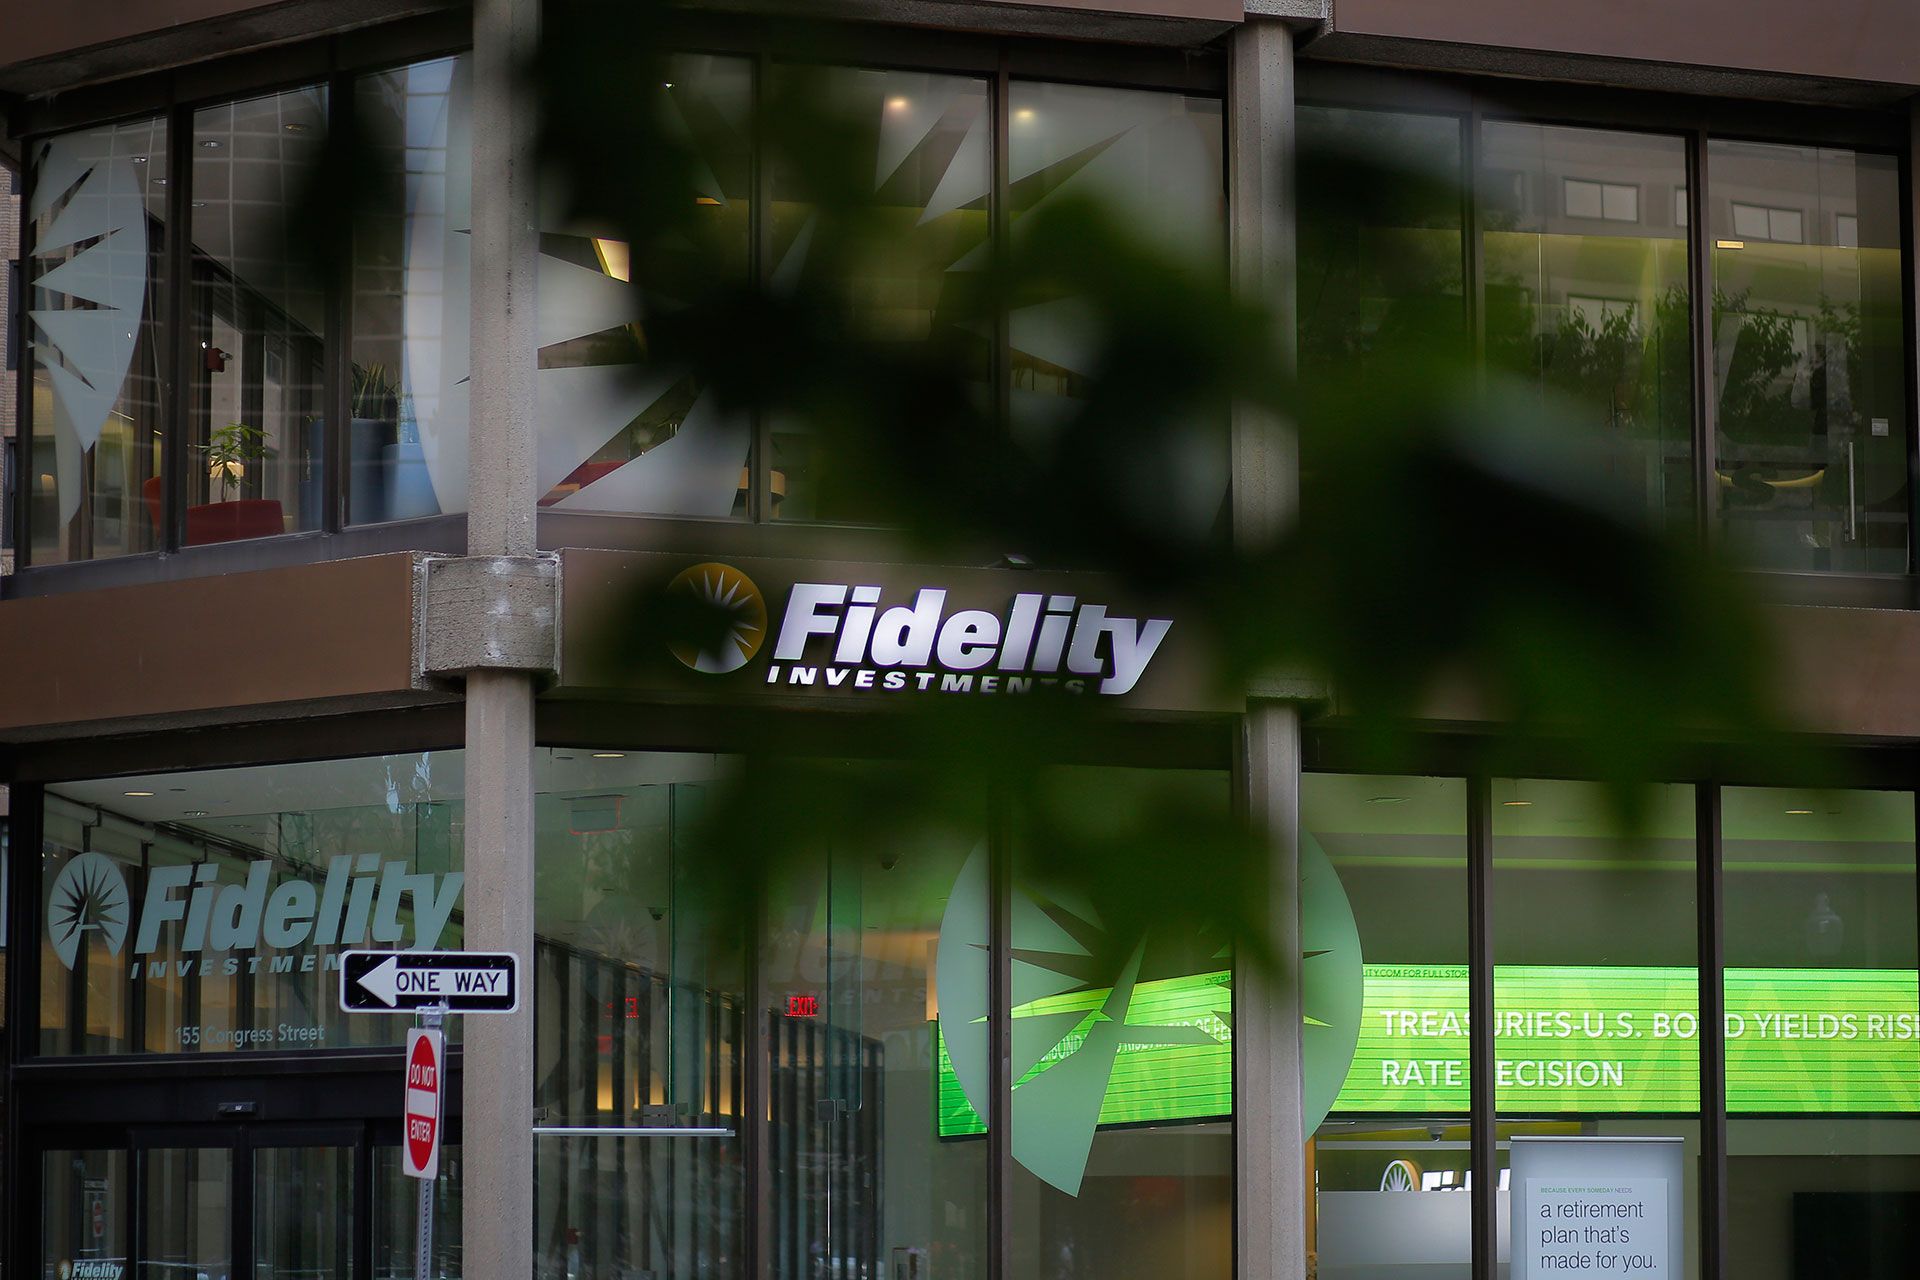 How the owners of Fidelity get richer at everyday investors